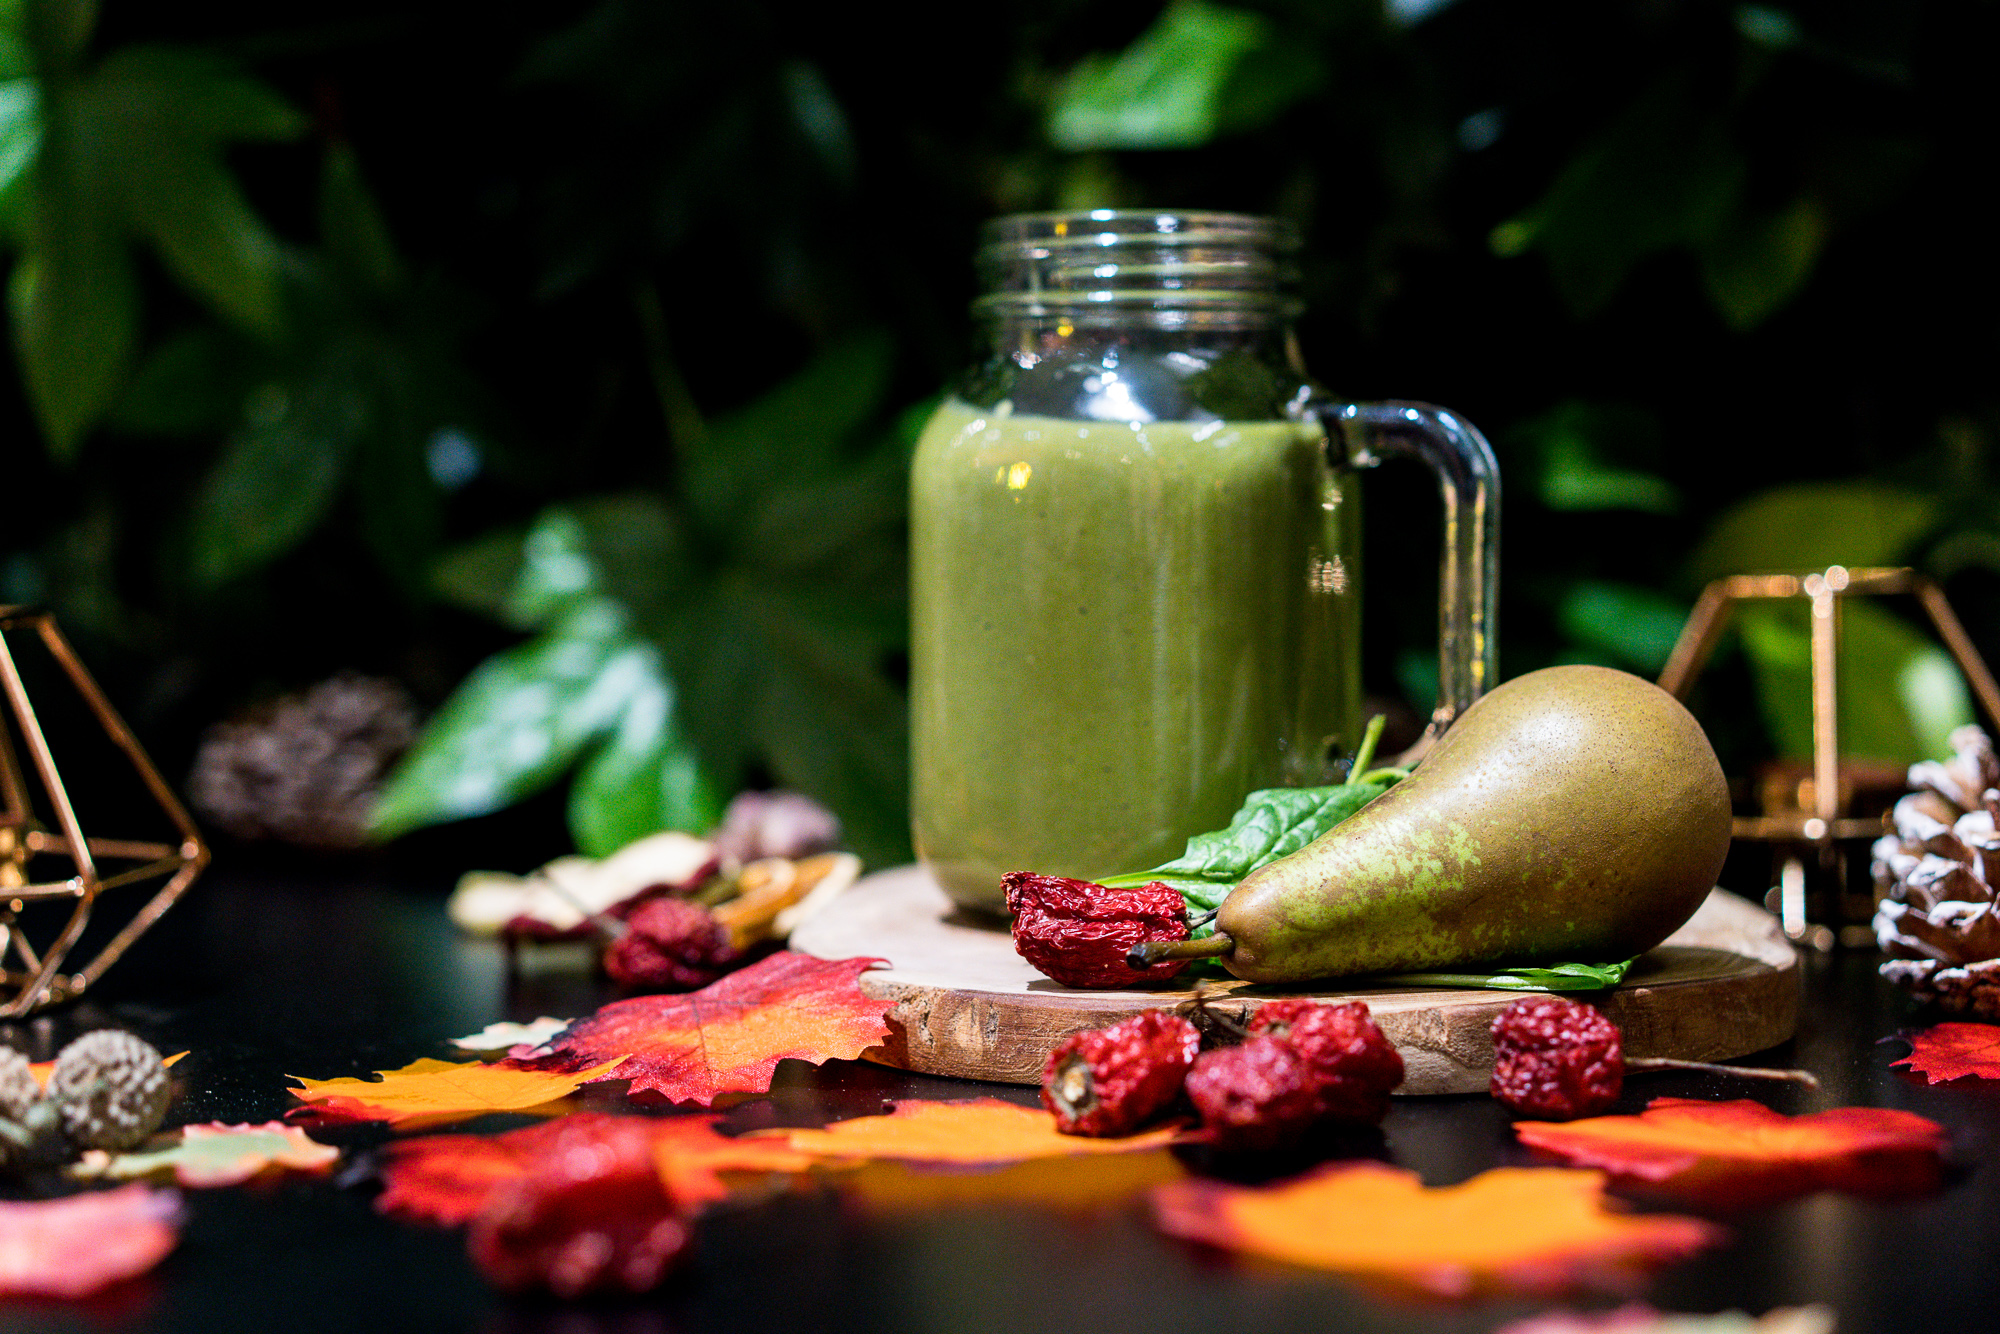 Warm Pear and Spinach Smoothie